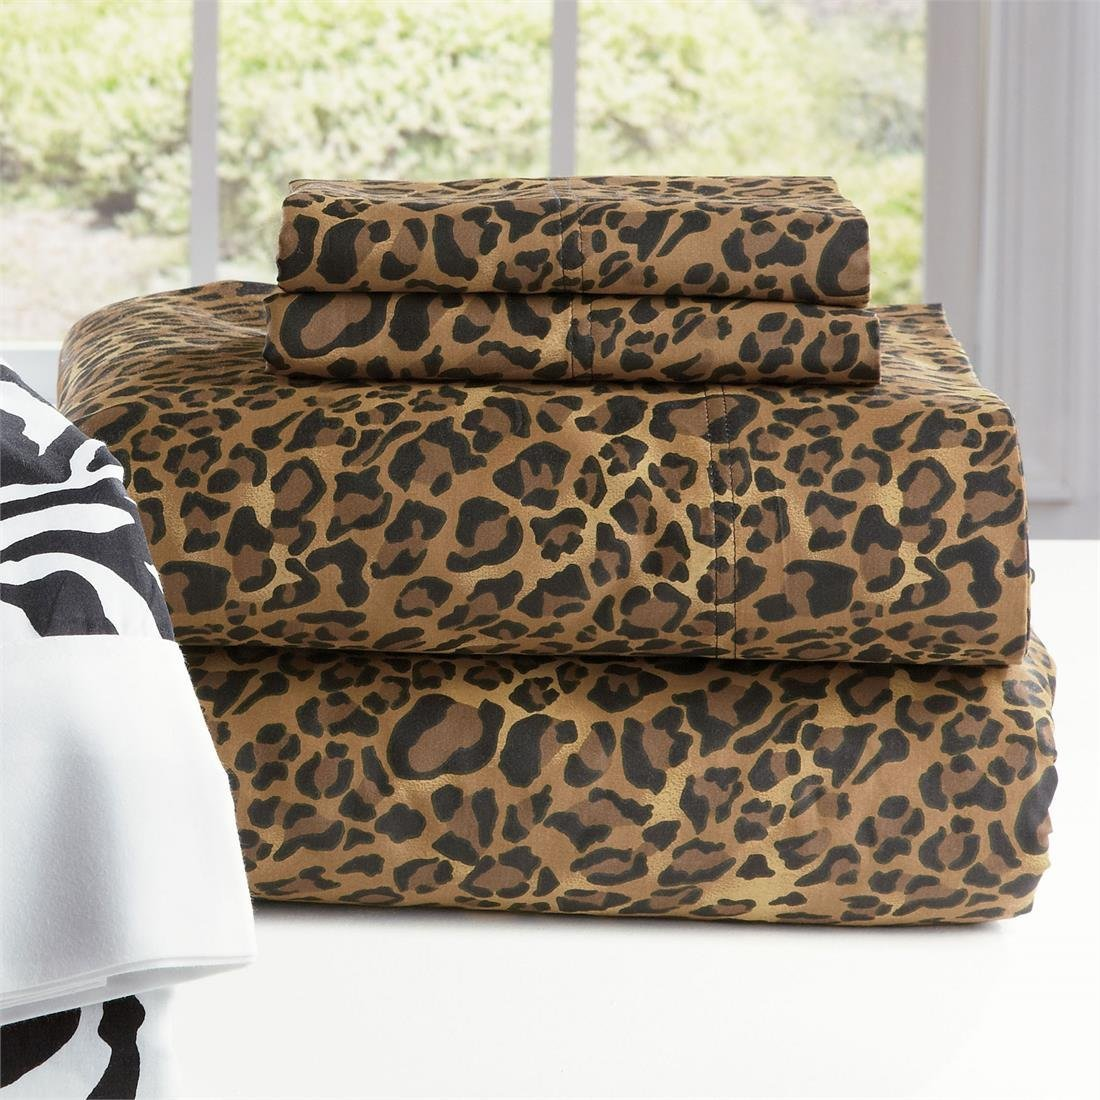 animal print accent chair pictures of chairs for bedrooms leopard decor ideasdecor ideas